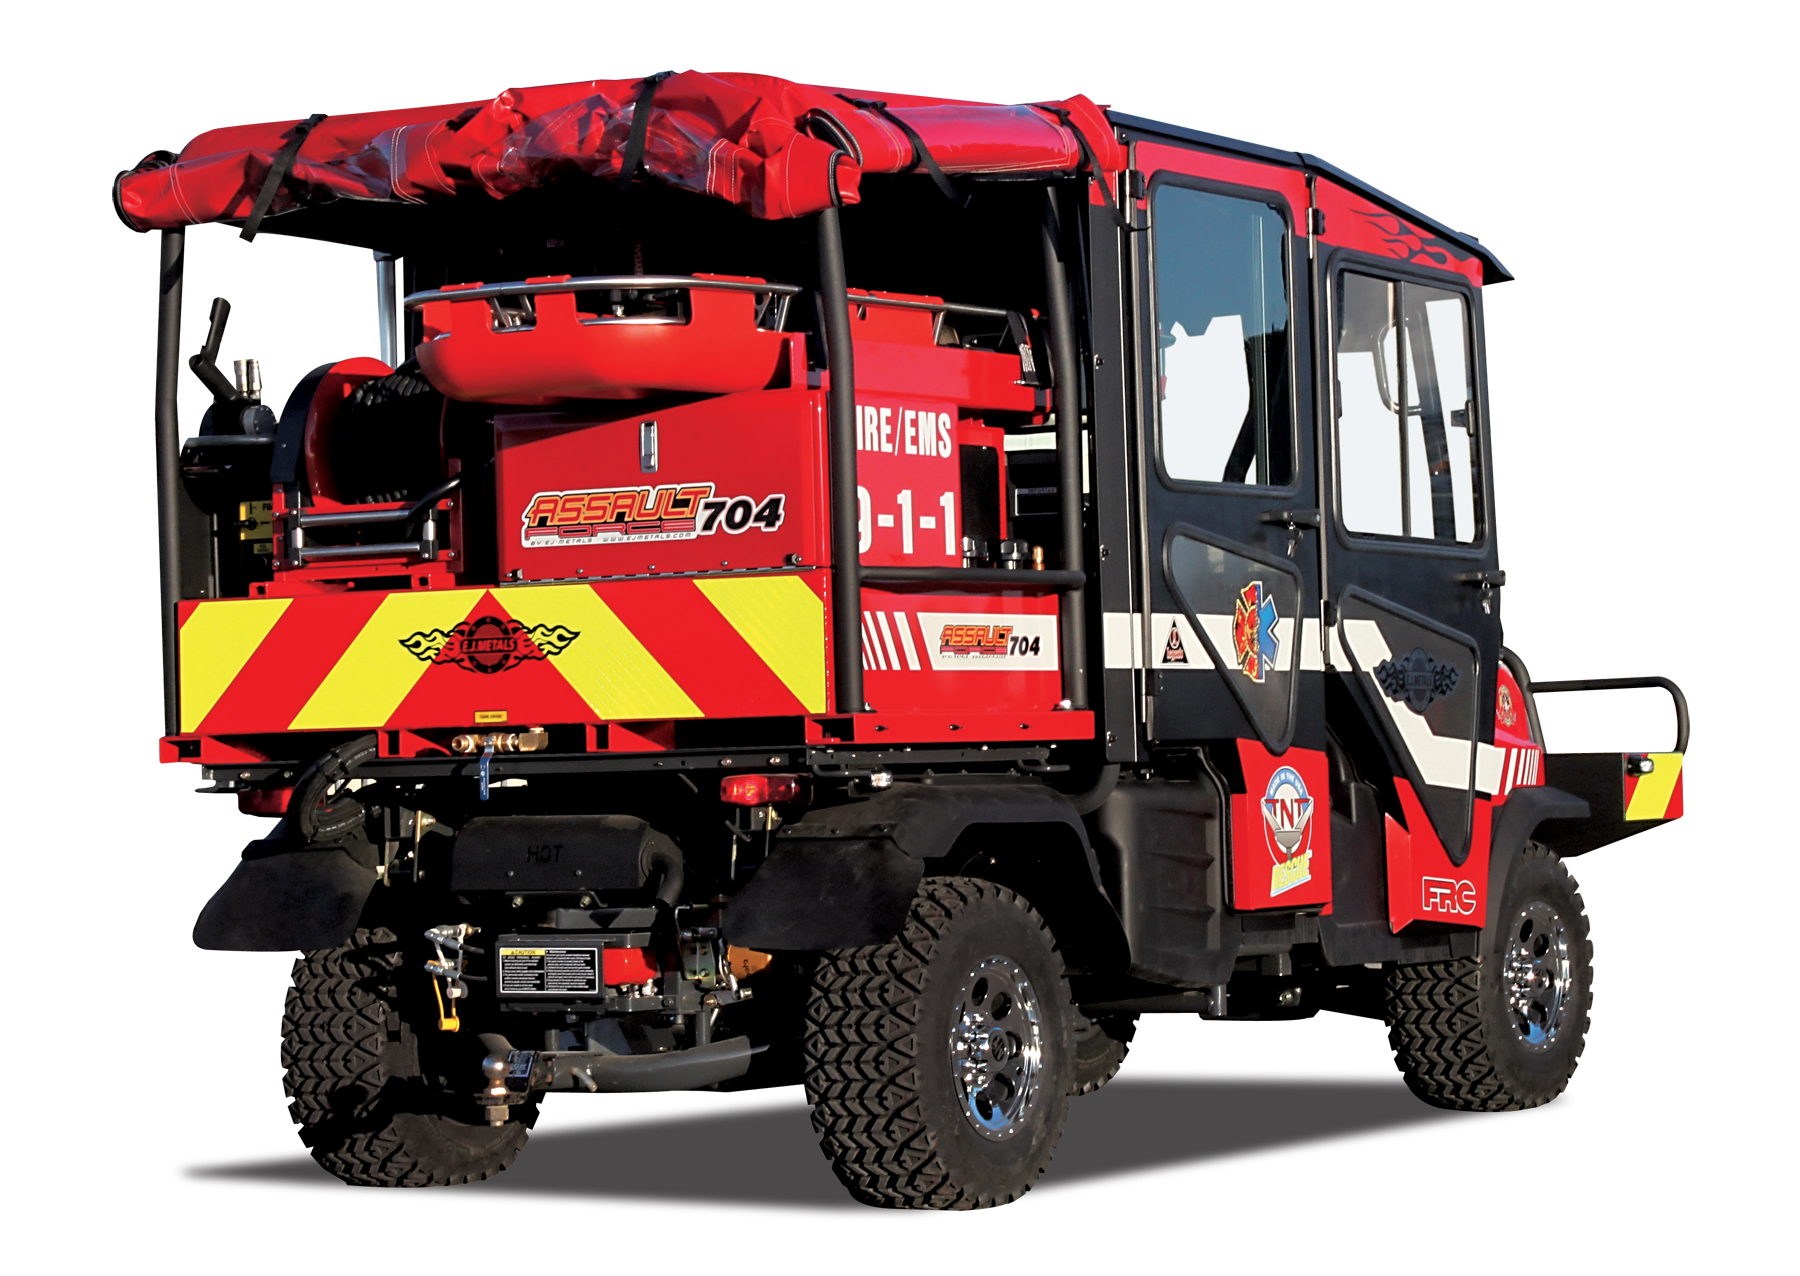 e j metals introduces new assault force 70 4 fire rescue rough terrain vehicles frrtv with. Black Bedroom Furniture Sets. Home Design Ideas